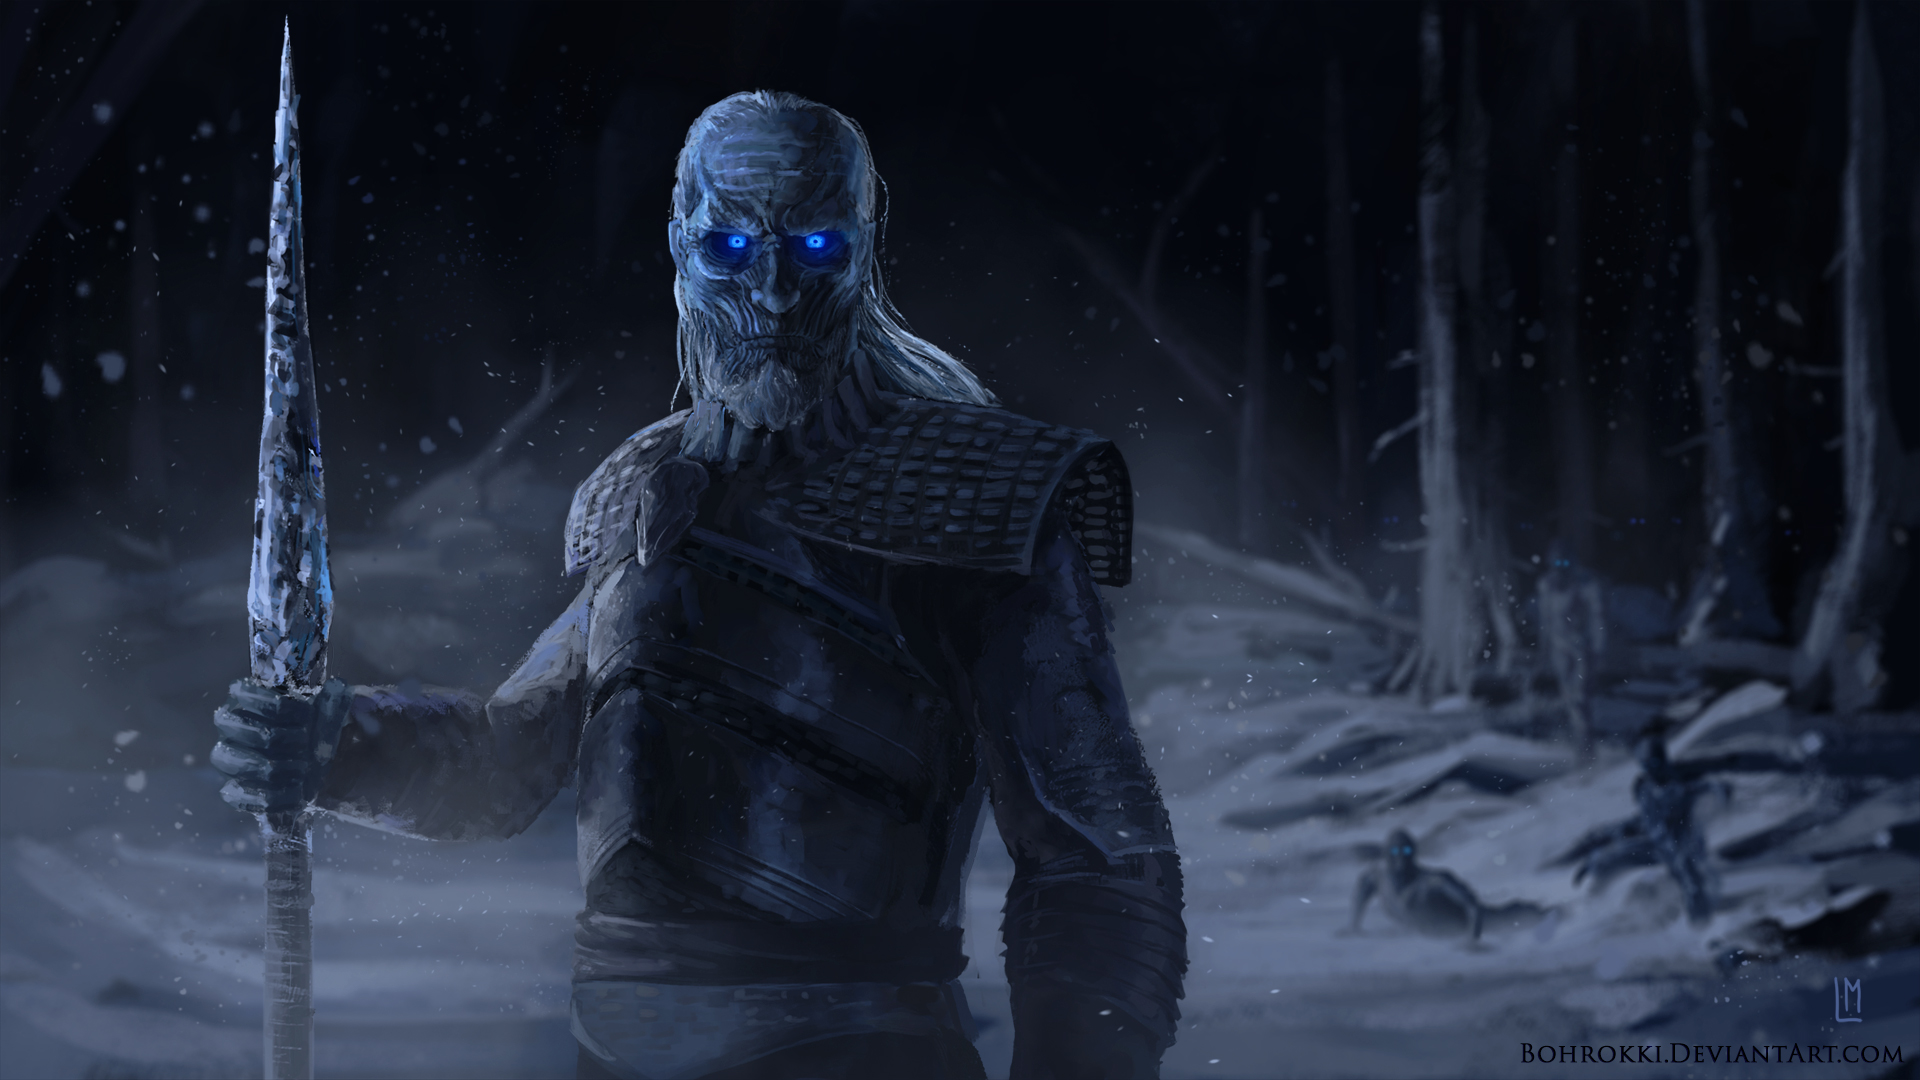 Night King White Walker Artwork927752972 - Night King White Walker Artwork - white, Walker, Night, King, Daredevil, Artwork